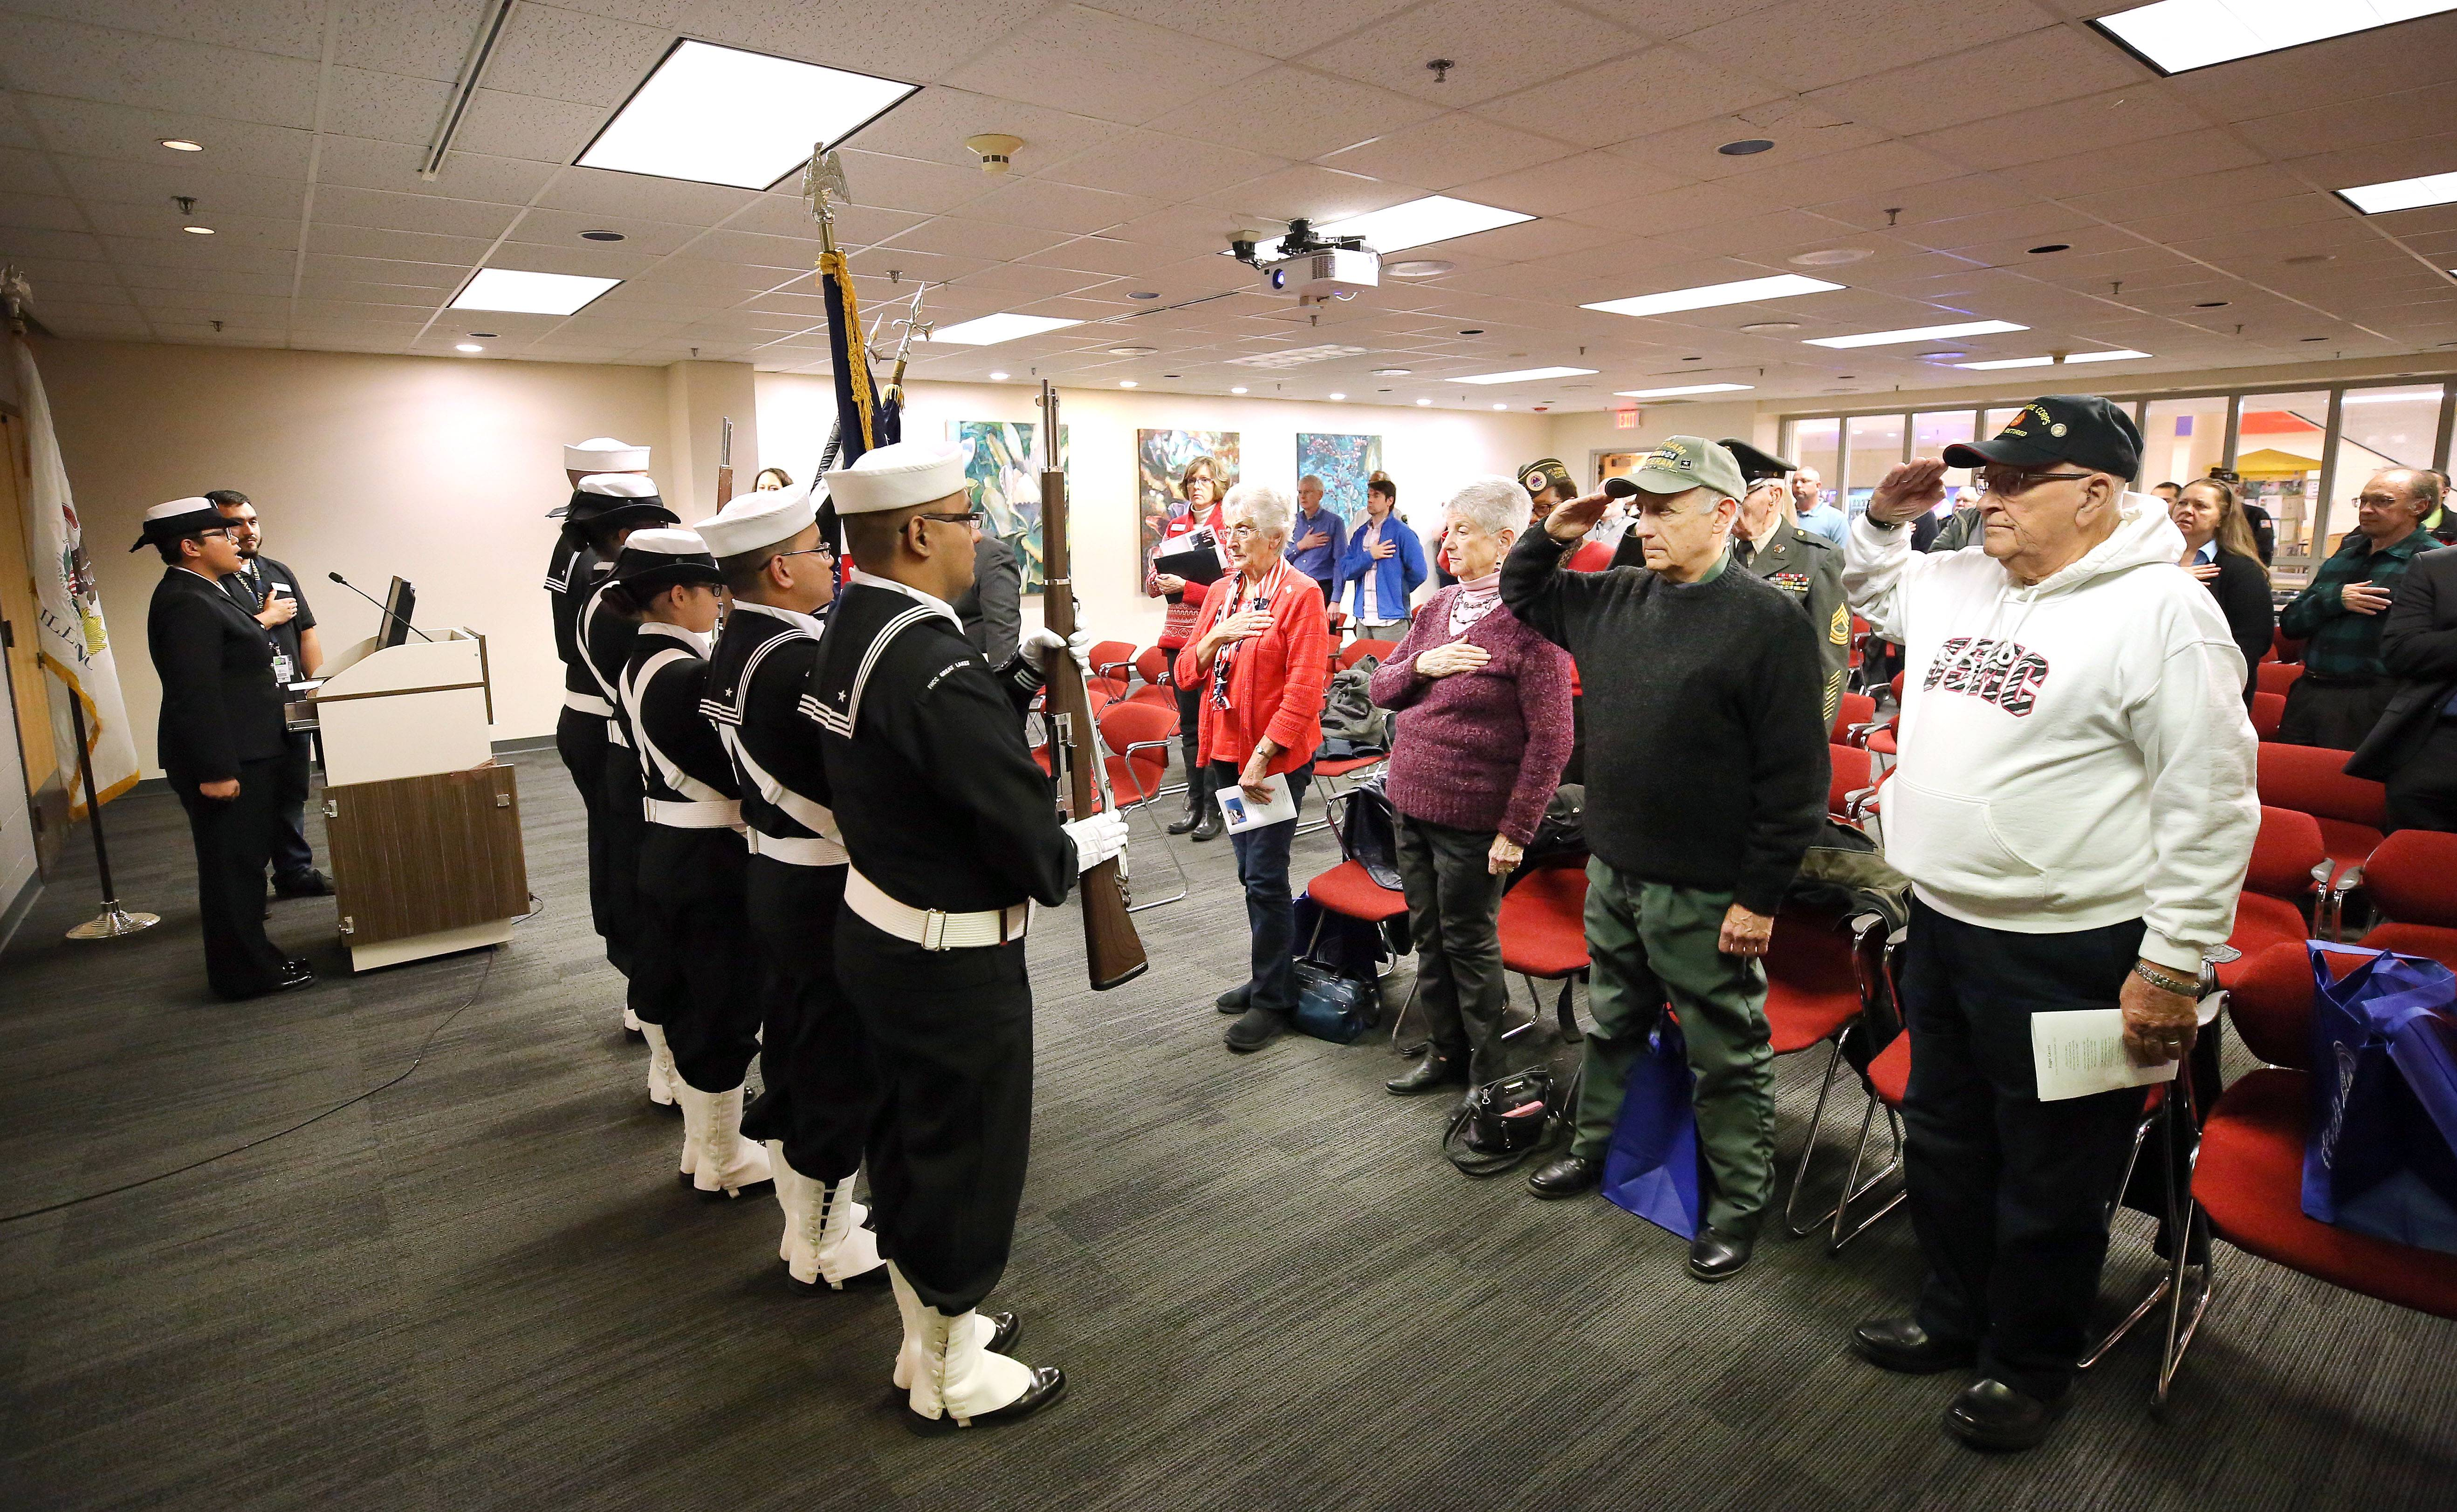 Steve Lundy/slundy@dailyherald.comColor Guard from Naval Station Great Lakes present the colors during a Veterans Day ceremony at the College of Lake County Friday in Grayslake.